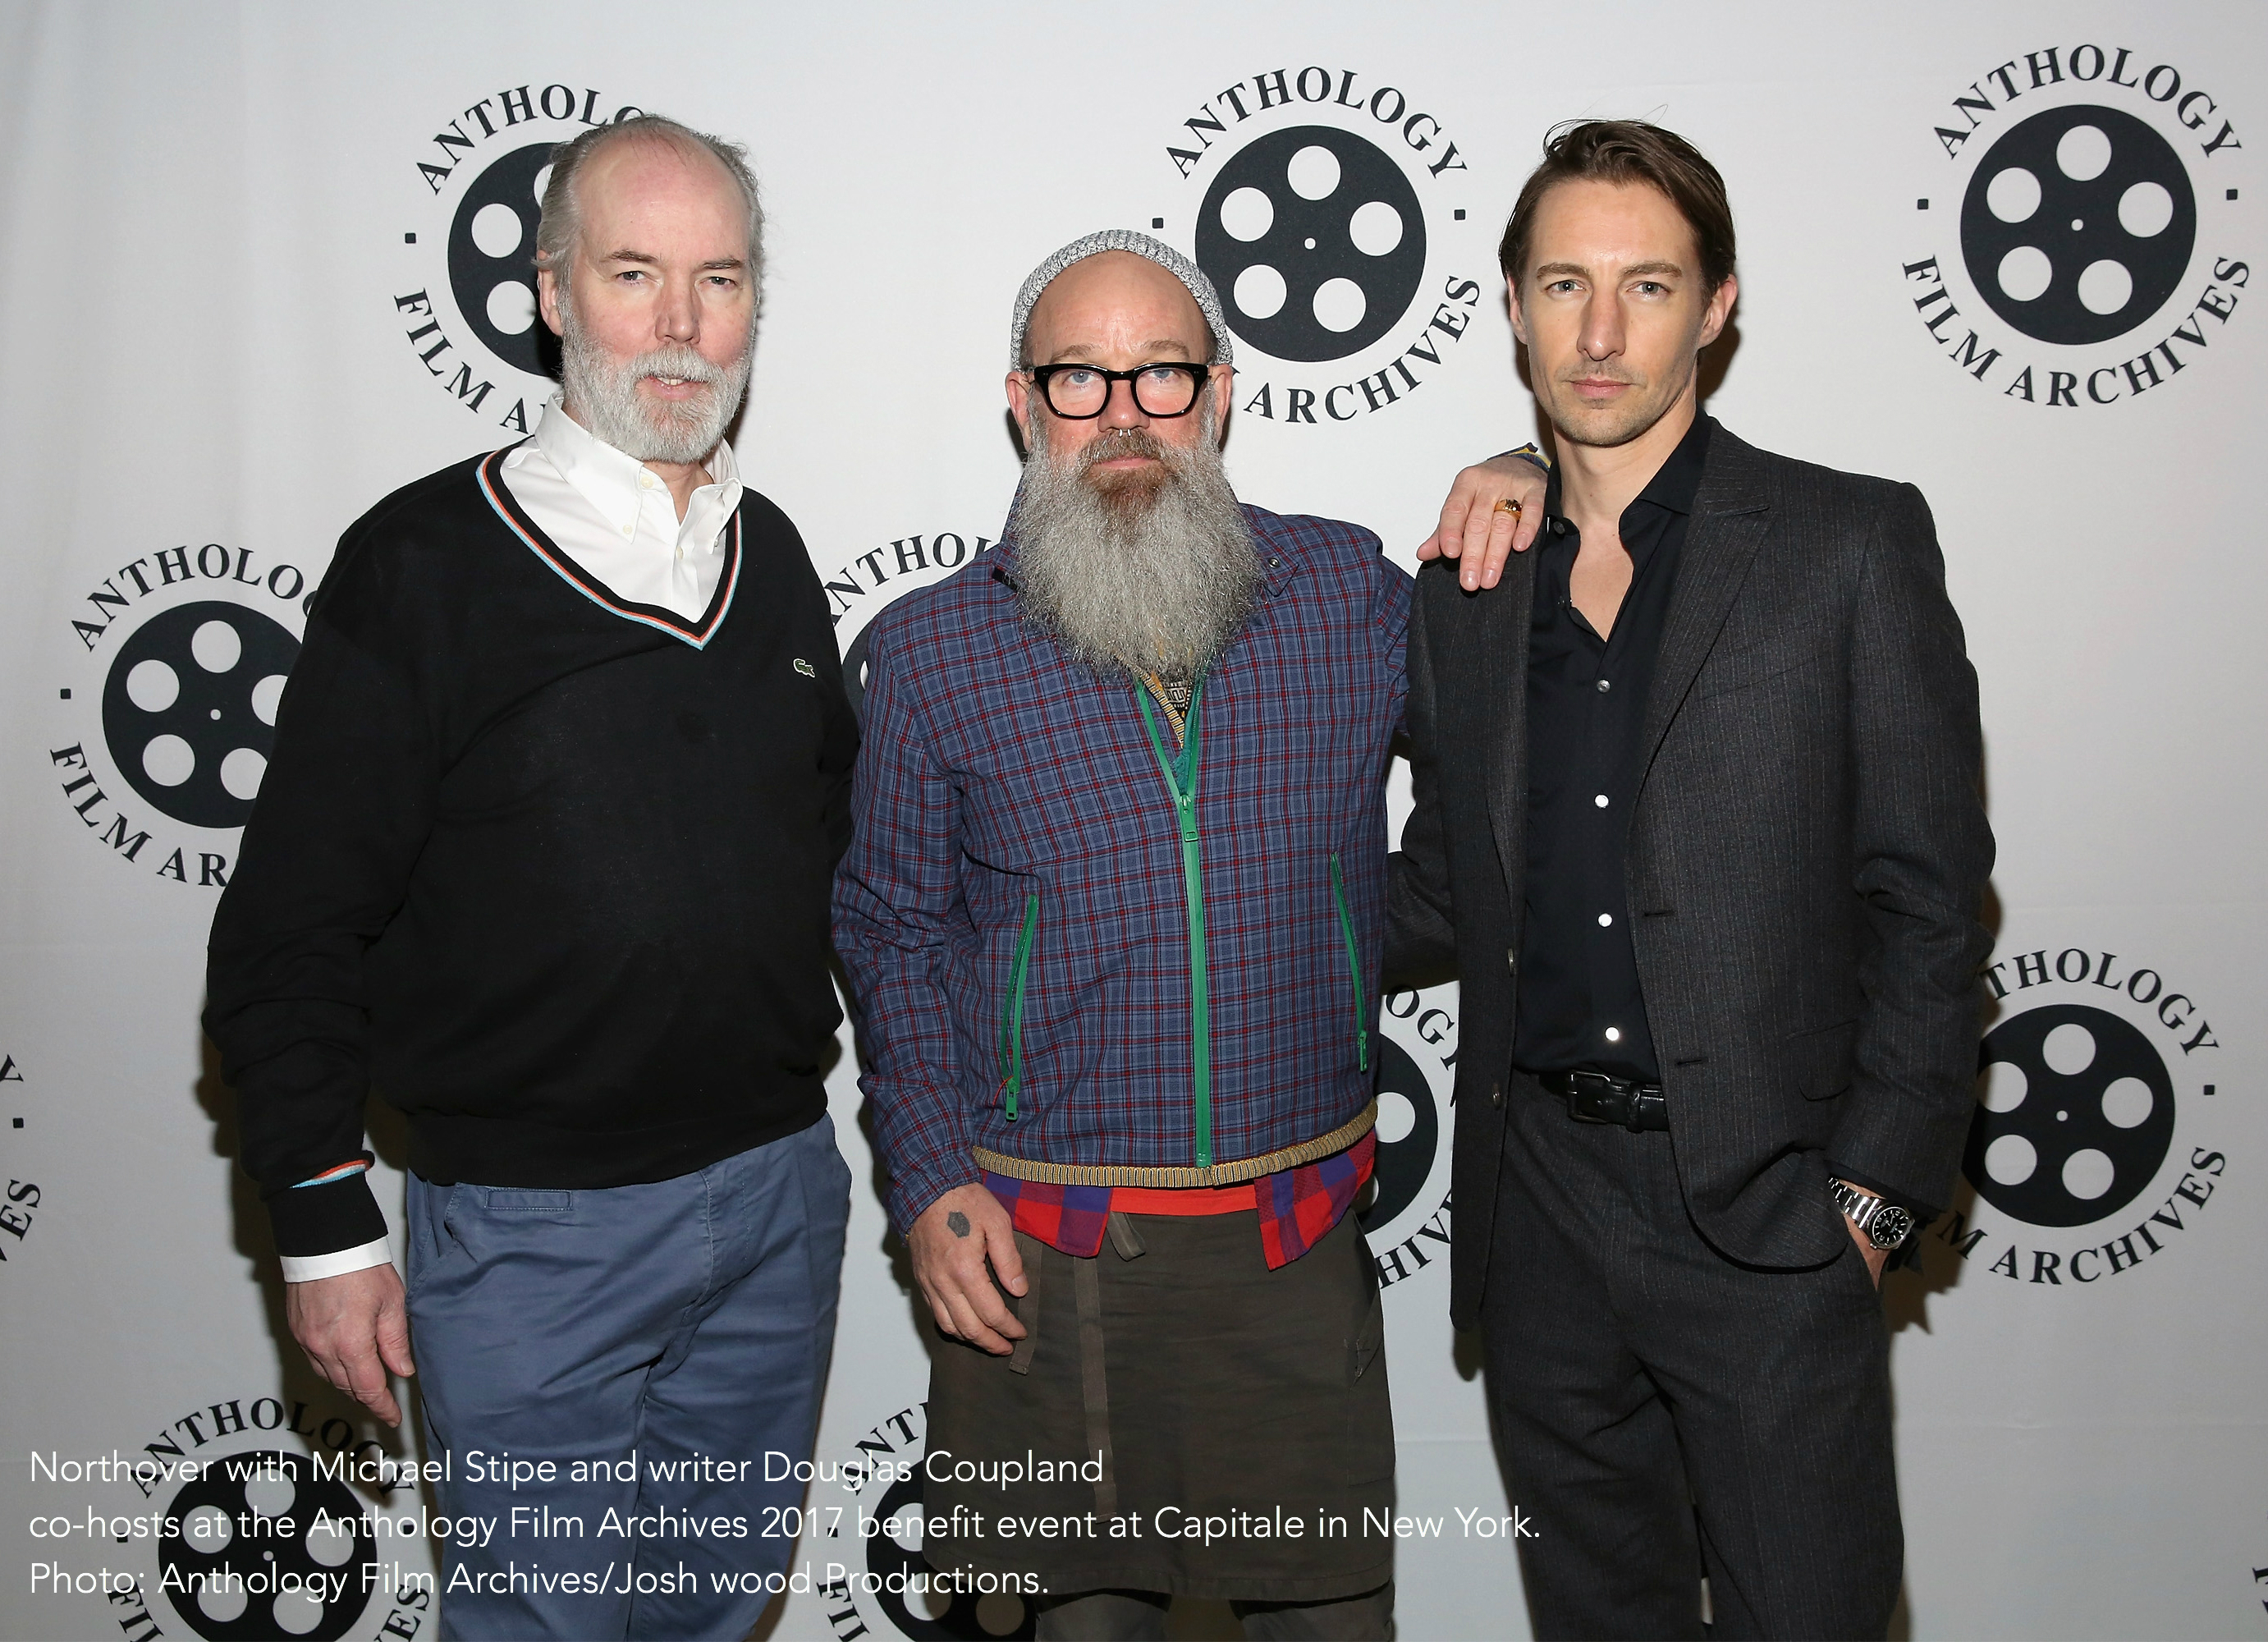 Northover with Michael Stipe and writer Douglas Coupland co-hosts at the Anthology Film Archives 2017 benefit event at Capitale in New York. Photo: Anthology Film Archives/Josh wood Productions.